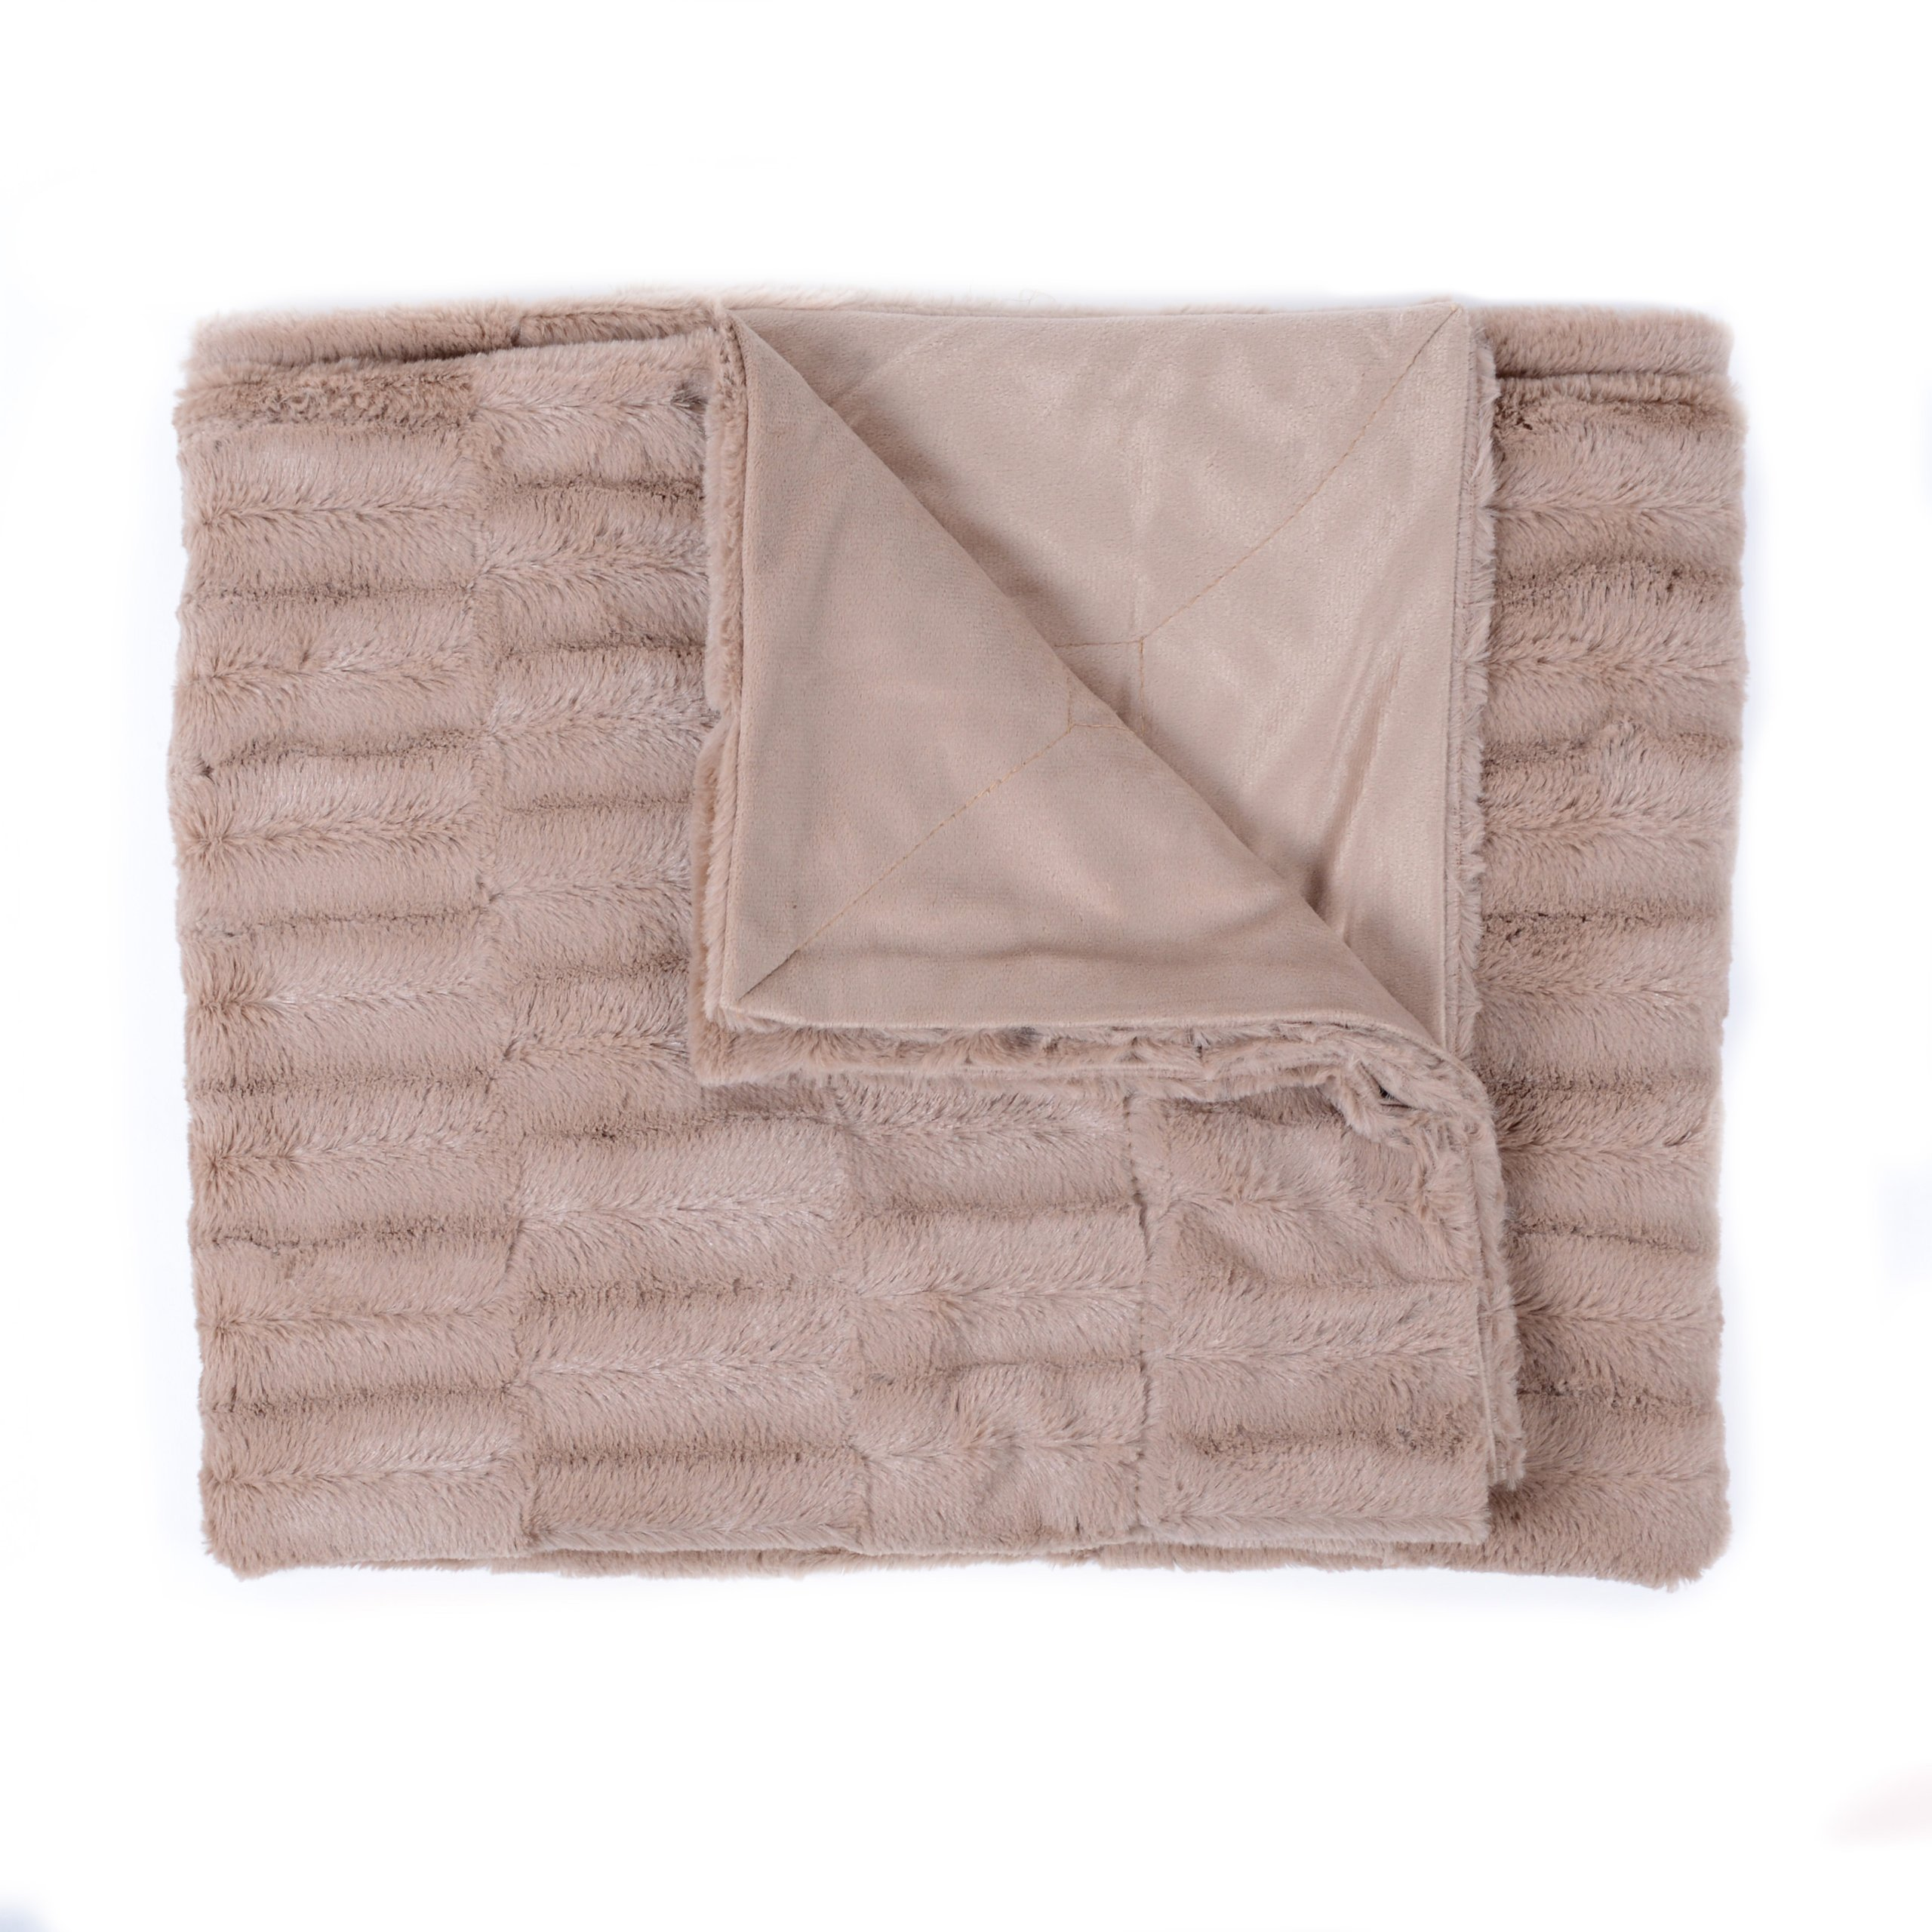 Sweet Home Collection Casie Decorative Reversible Faux Fur and Mink Throw Blanket, 50 x 60'', Animal Pattern, Taupe